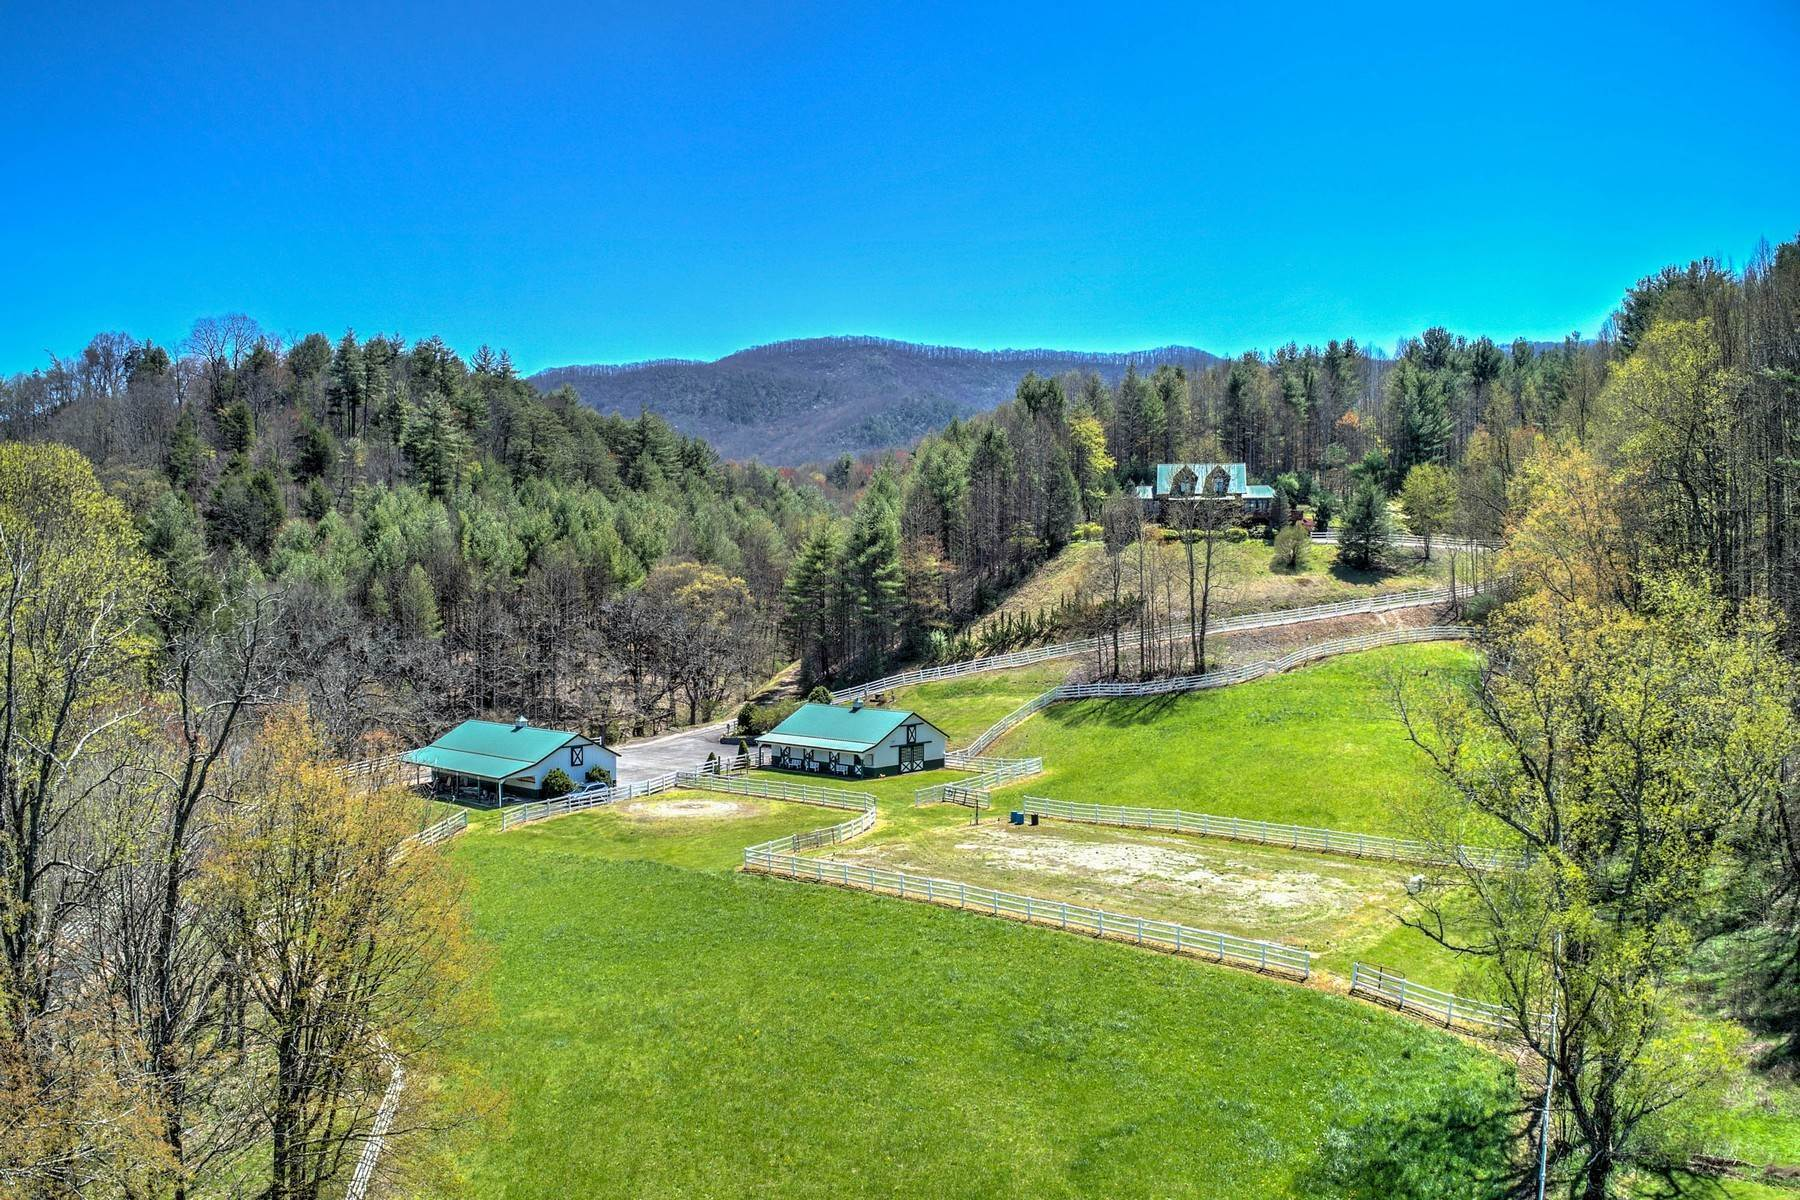 Single Family Homes for Sale at Cross Creek Ranch 151 Jordan Lane Mountain City, Tennessee 37683 United States